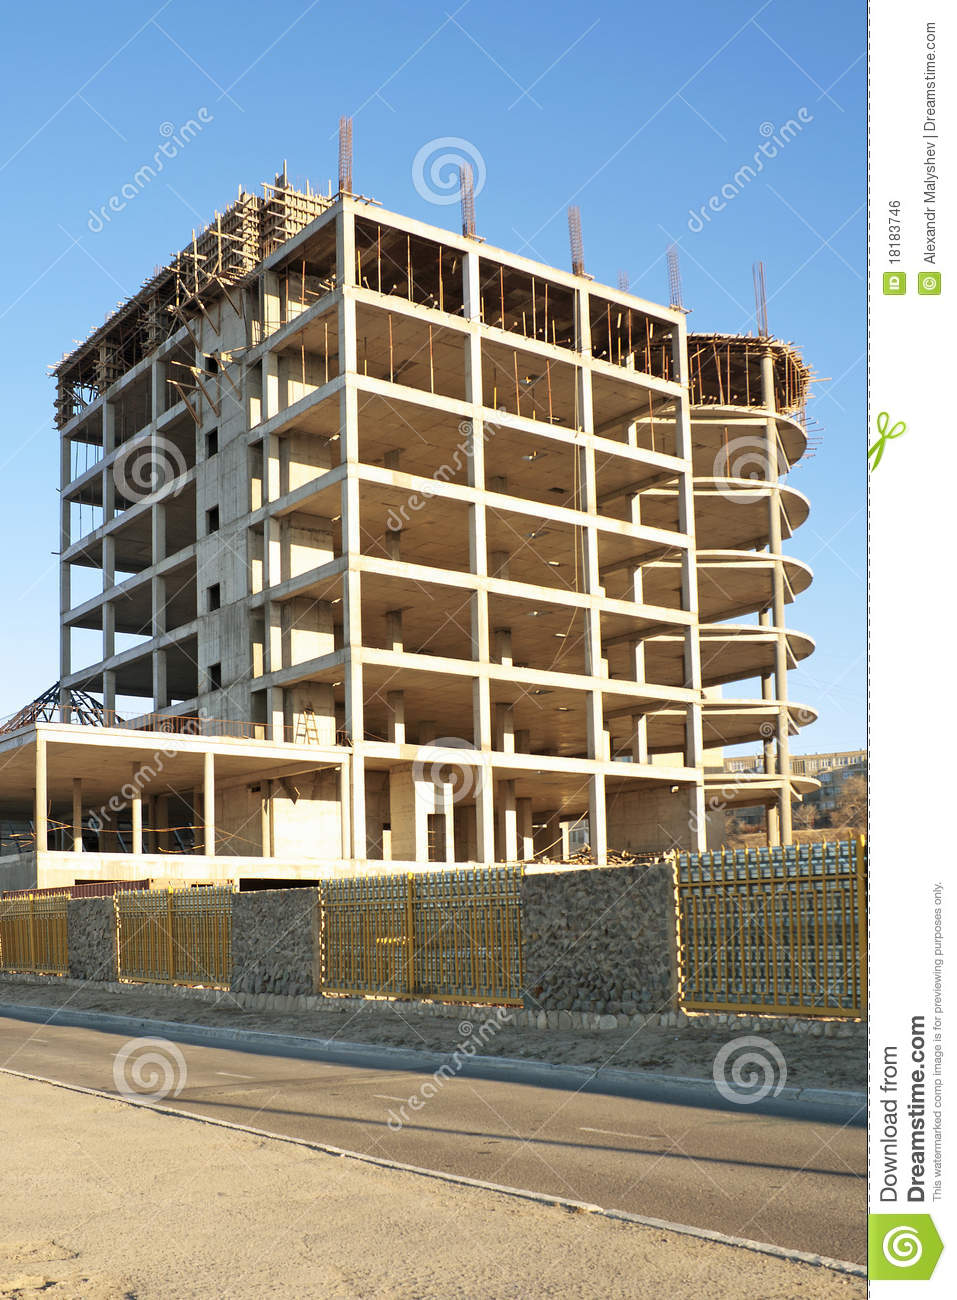 Building under construction royalty free stock image for Building under construction insurance